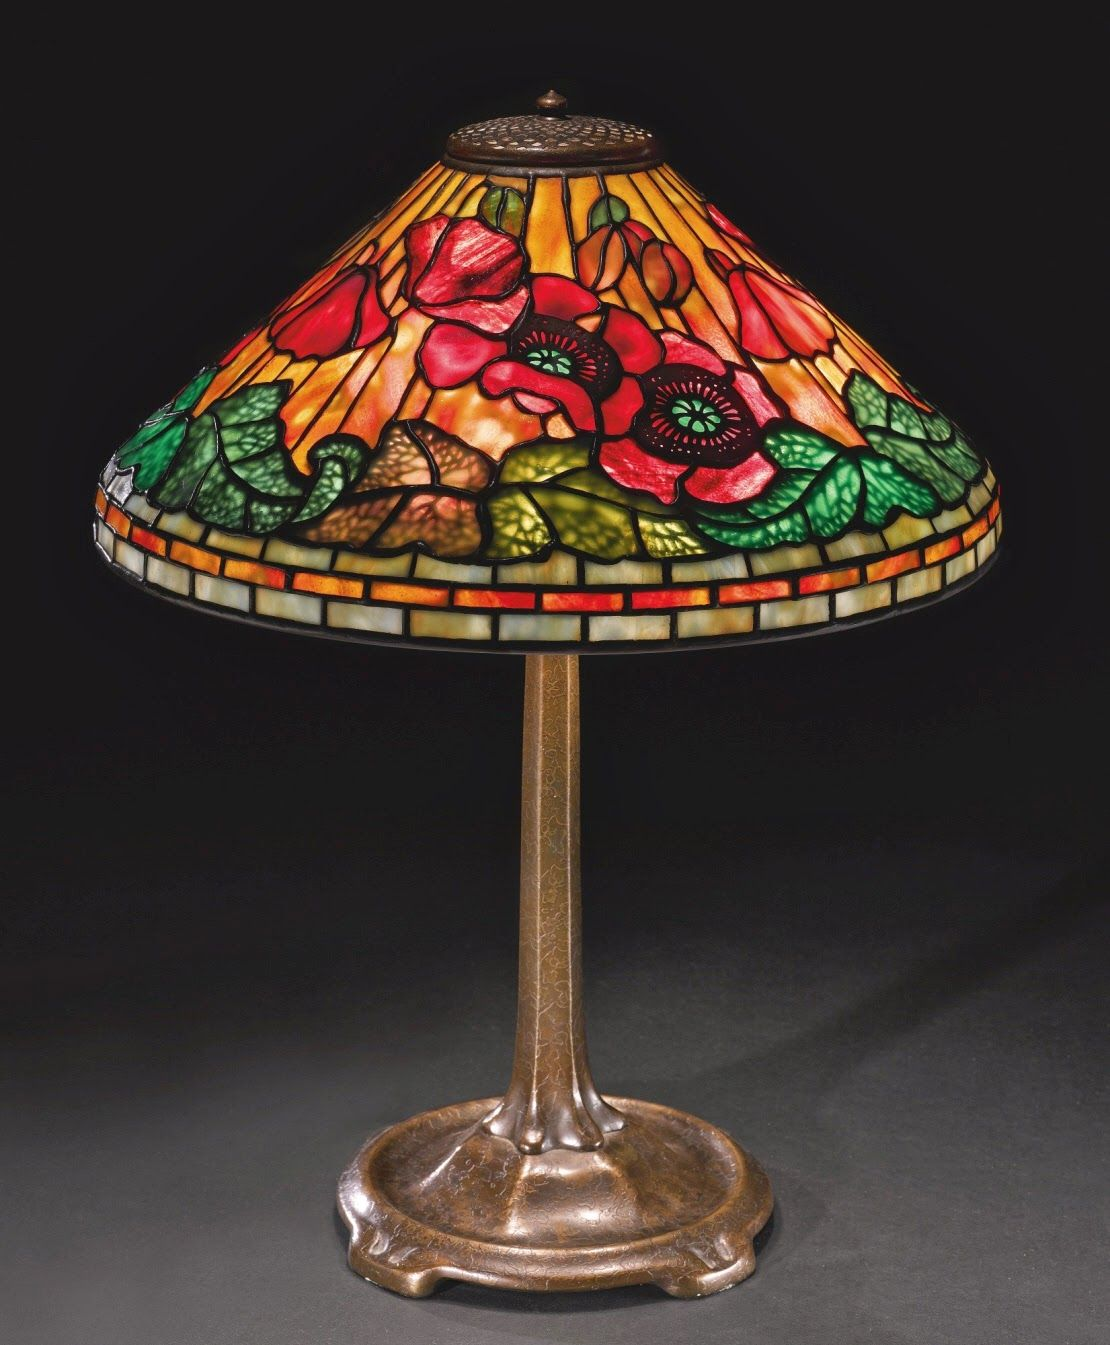 Image Result For Original Tiffany Lamps For Sale